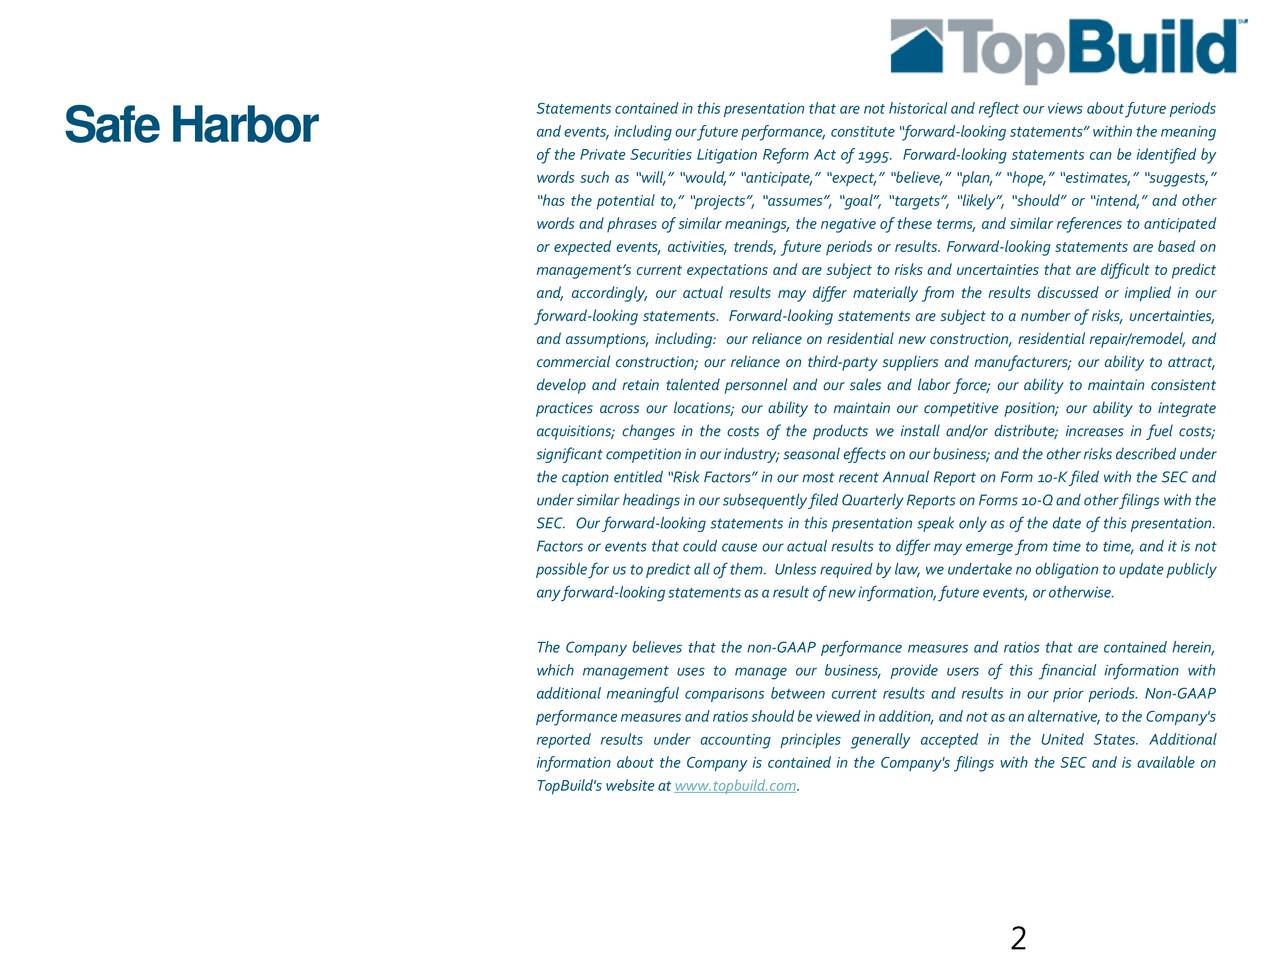 SafeHarbor and events, includingour future performance, constitute forward-looking statements within the meaning of the Private Securities Litigation Reform Act of 1995. Forward-looking statements can be identified by words such as will, would, anticipate, expect, believe, plan, hope, estimates, suggests, has the potential to, projects, assumes, goal, targets, likely, should or intend, and other words and phrases of similar meanings, the negative of these terms, and similar references to anticipated or expected events, activities, trends, future periods or results. Forward-looking statements are based on managements current expectations and are subject to risks and uncertainties that are difficult to predict and, accordingly, our actual results may differ materially from the results discussed or implied in our forward-looking statements. Forward-looking statements are subject to a number of risks, uncertainties, and assumptions, including: our reliance on residential new construction, residential repair/remodel, and commercial construction; our reliance on third-party suppliers and manufacturers; our ability to attract, develop and retain talented personnel and our sales and labor force; our ability to maintain consistent practices across our locations; our ability to maintain our competitive position; our ability to integrate acquisitions; changes in the costs of the products we install and/or distribute; increases in fuel costs; significant competitioninourindustry; seasonal effects onourbusiness; andtheother risks described under the caption entitled Risk Factors in our most recent Annual Report on Form 10-K filed with the SEC and under similar headings in our subsequently filed Quarterly Reports on Forms 10-Qand other filings with the SEC. Our forward-looking statements in this presentation speak only as of the date of this presentation. Factors or events that could cause our actual results to differ may emerge from time to time, and it is not possible for us to